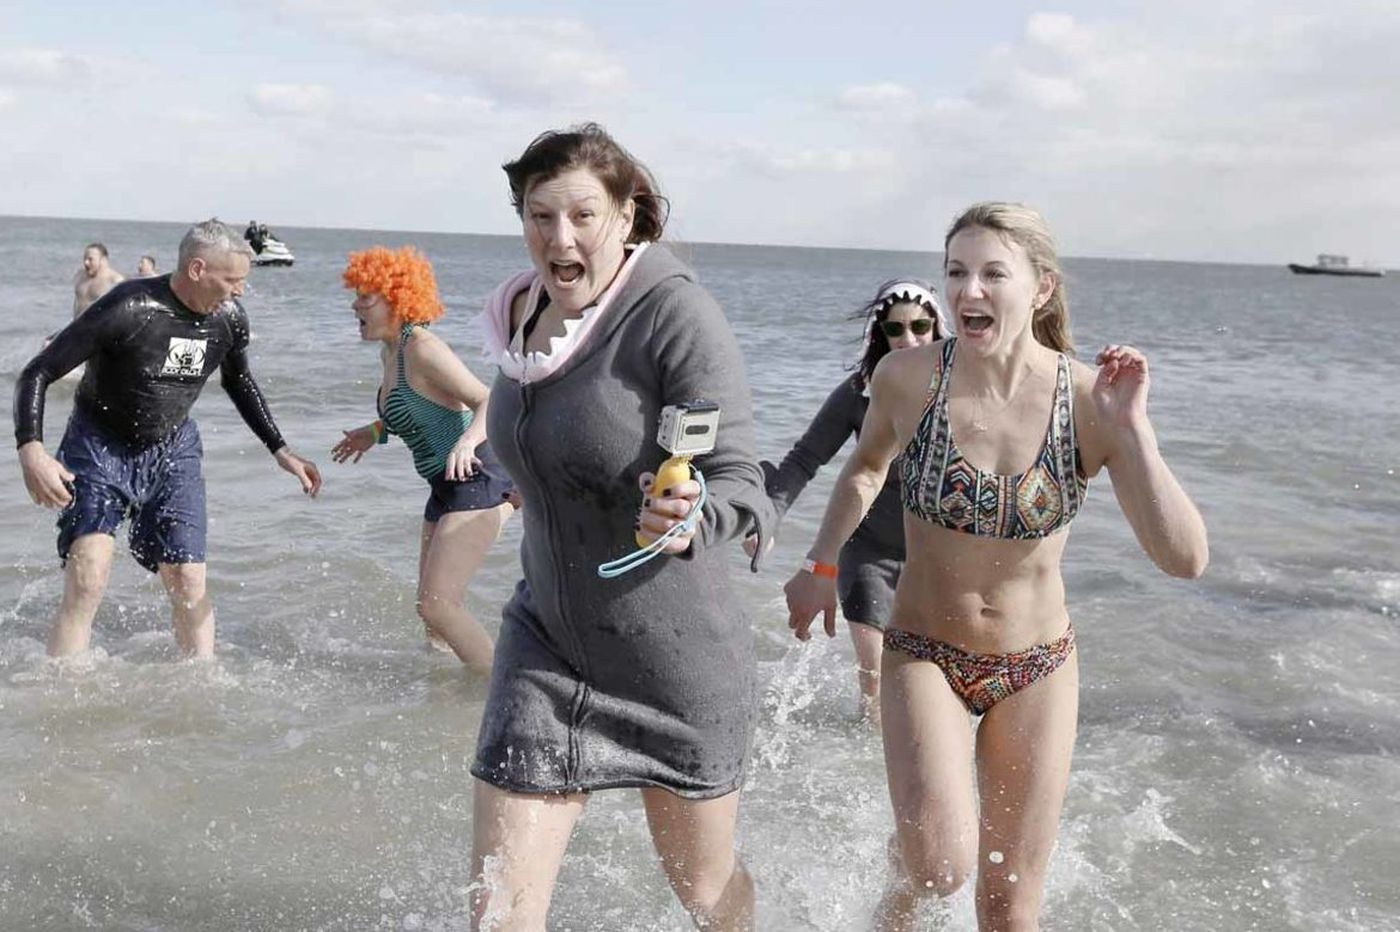 Atlantic City plans for polar bear plunge despite deep freeze; other Shore towns cancel